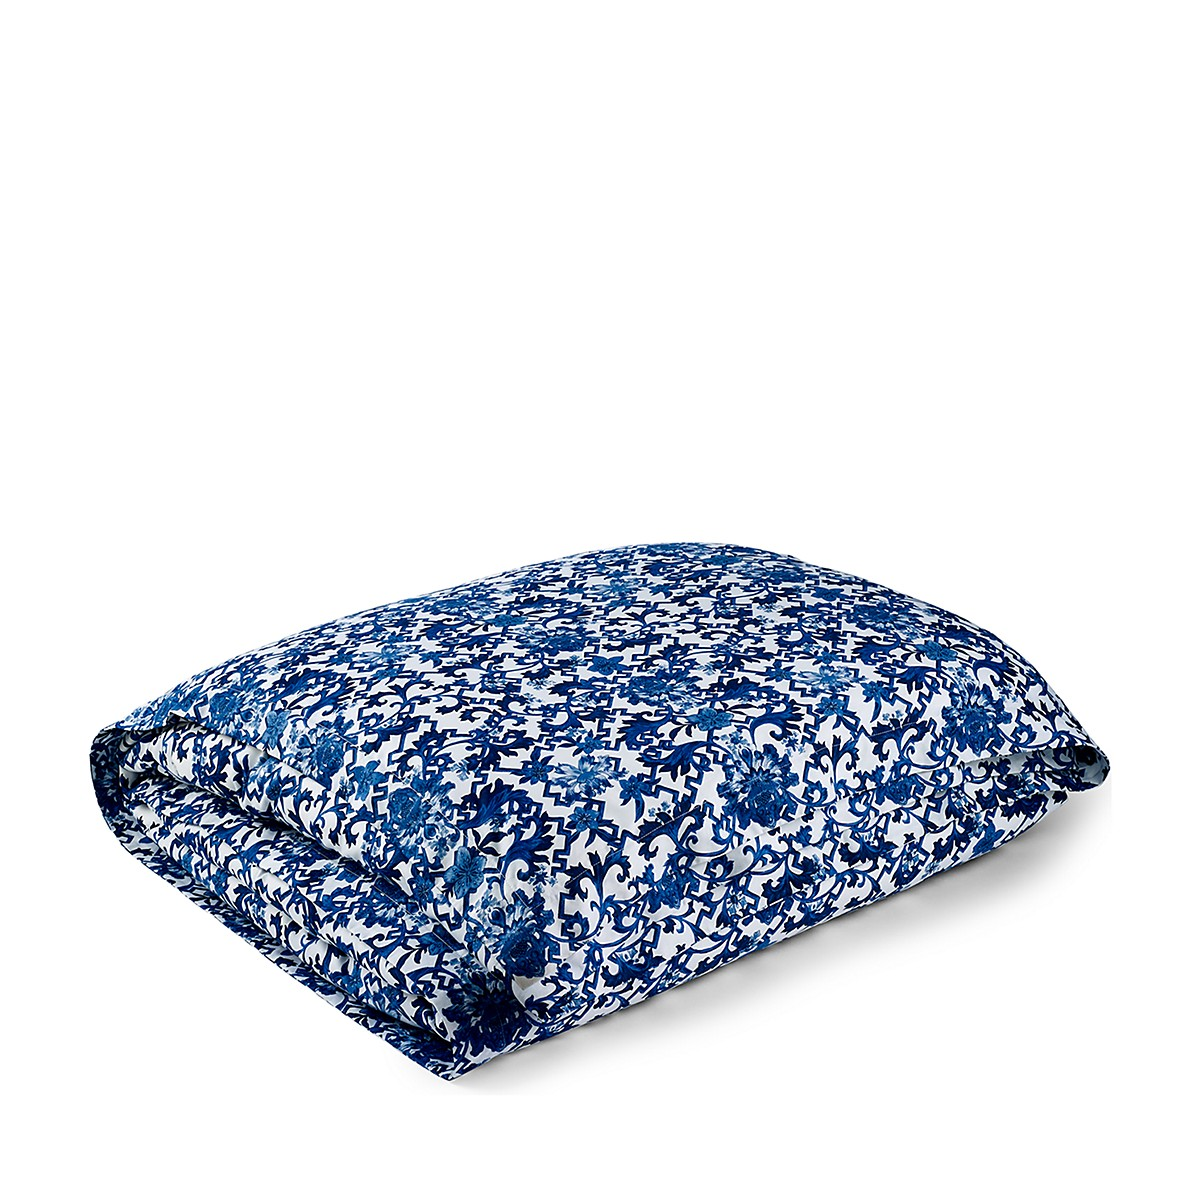 pintuck wh floor sham cover to covers is down top king ikea striped insert comforter sew kate queen spade dandy best also bloomingdales what duvet how costco comforters ruched